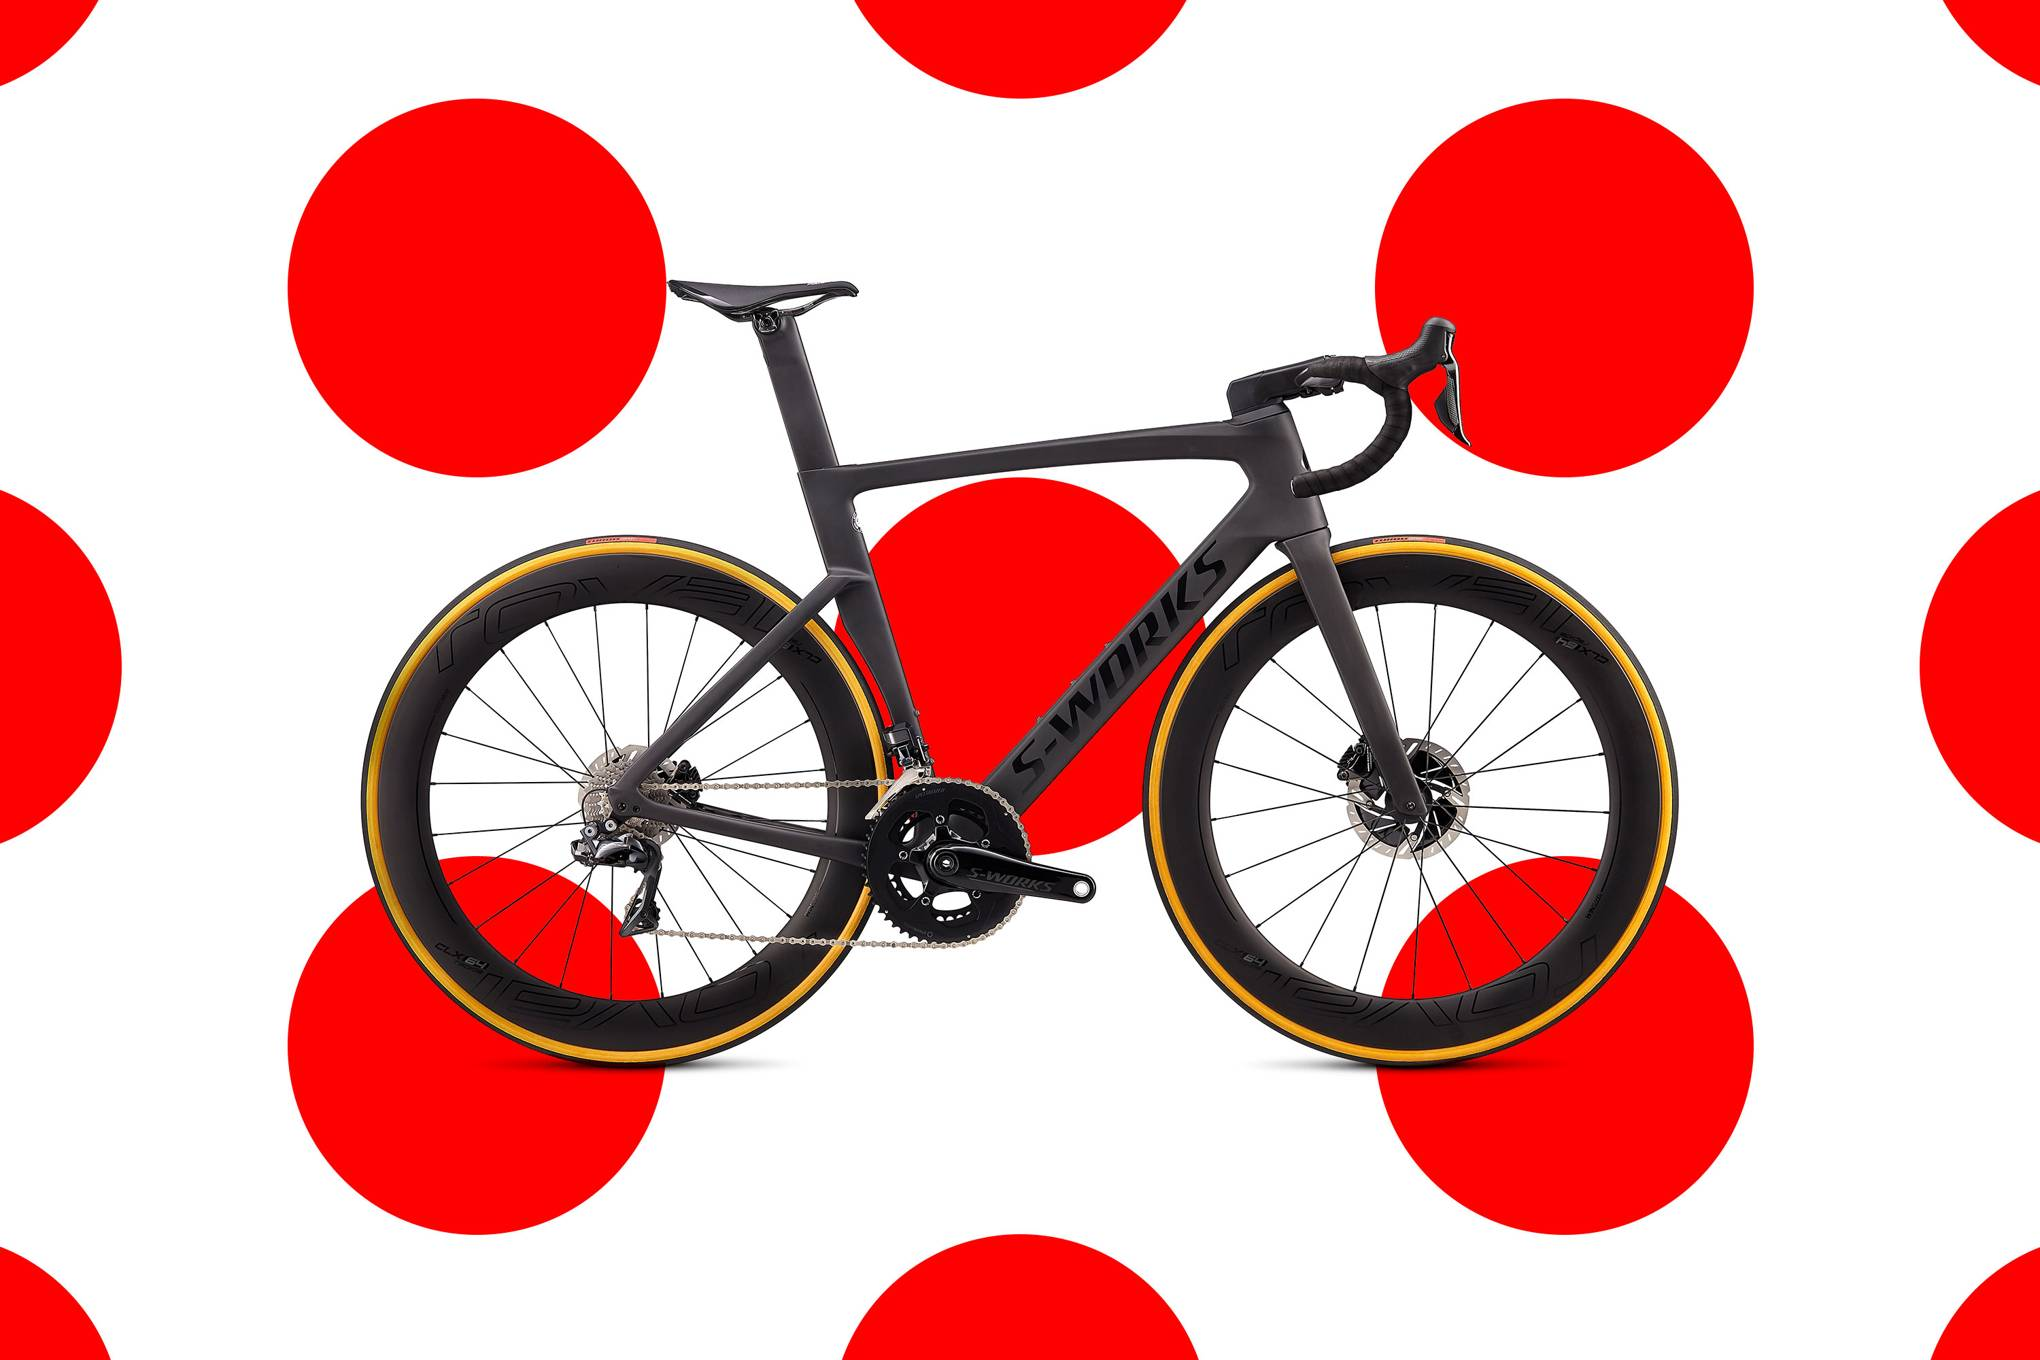 354c47f78c2 The fastest road bikes from 2019's Tour de France (that you can buy)    WIRED UK